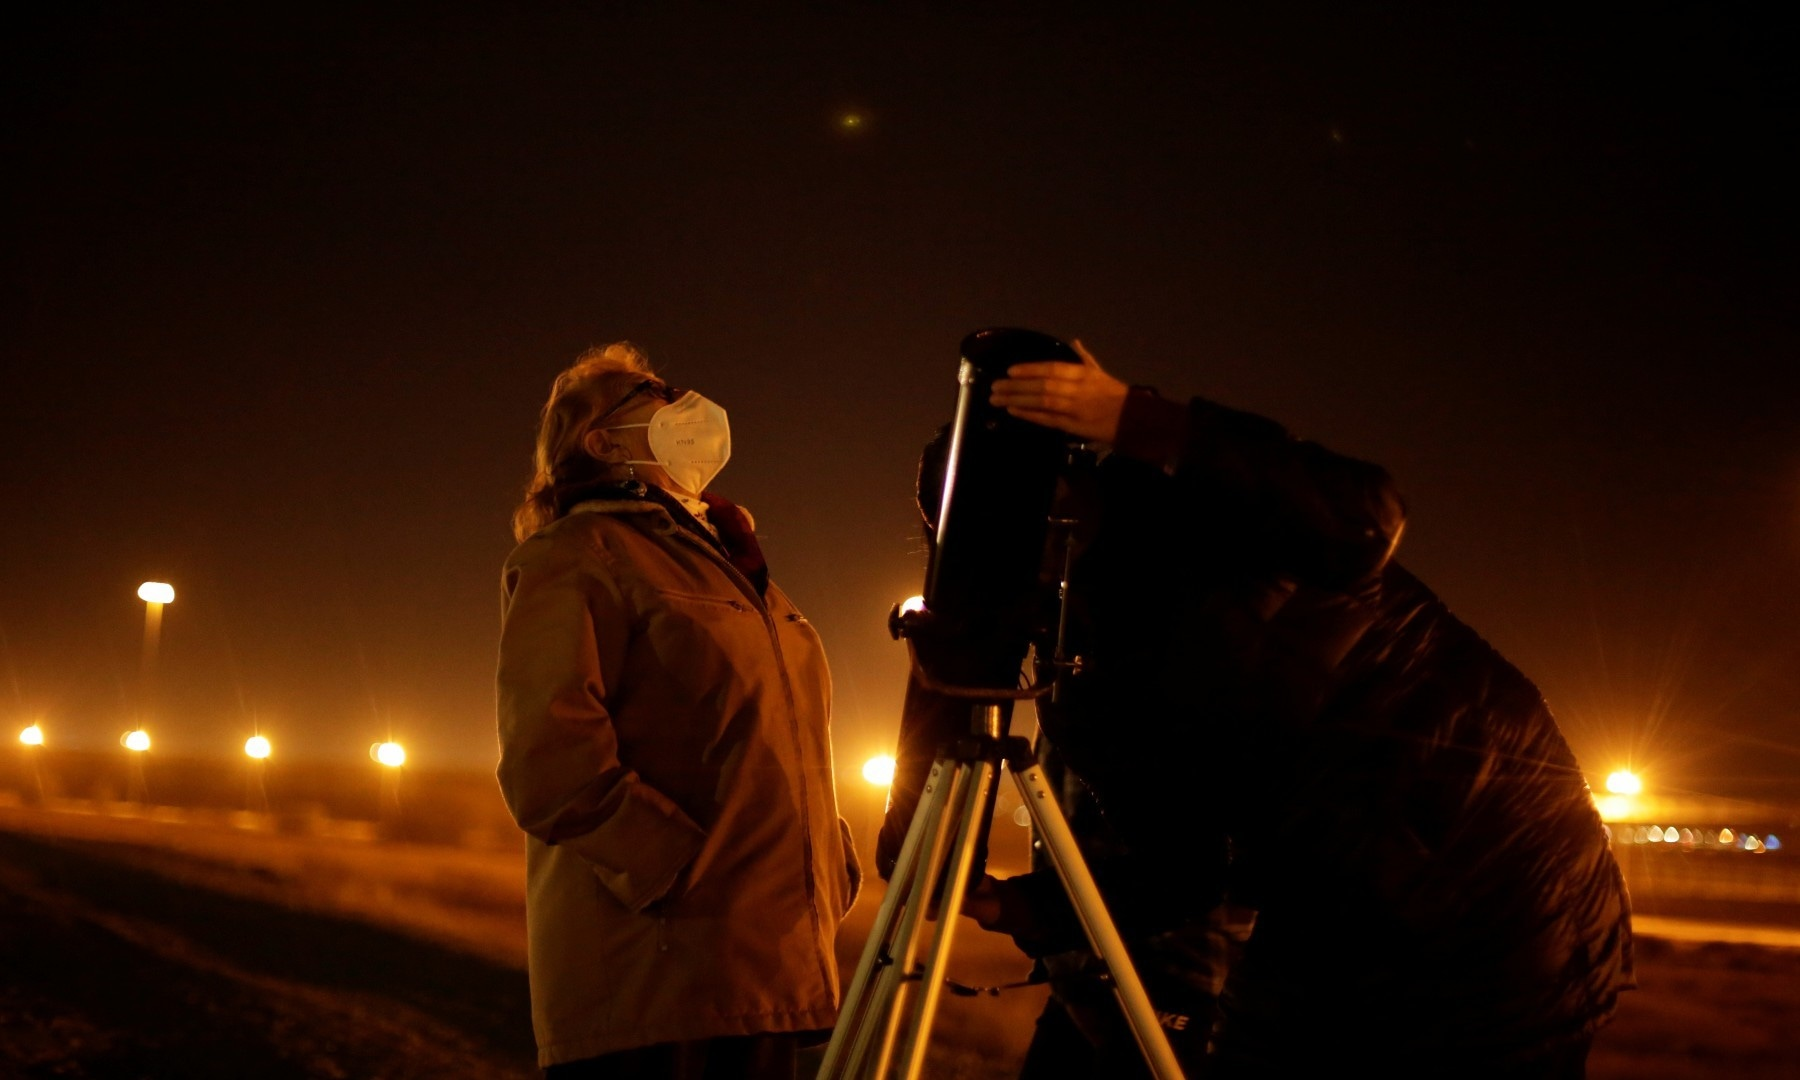 Members of the Mota Velazco family use a telescope to view Jupiter and Saturn during a planetary conjunction in Ciudad Juarez on Dec 21. — Reuters